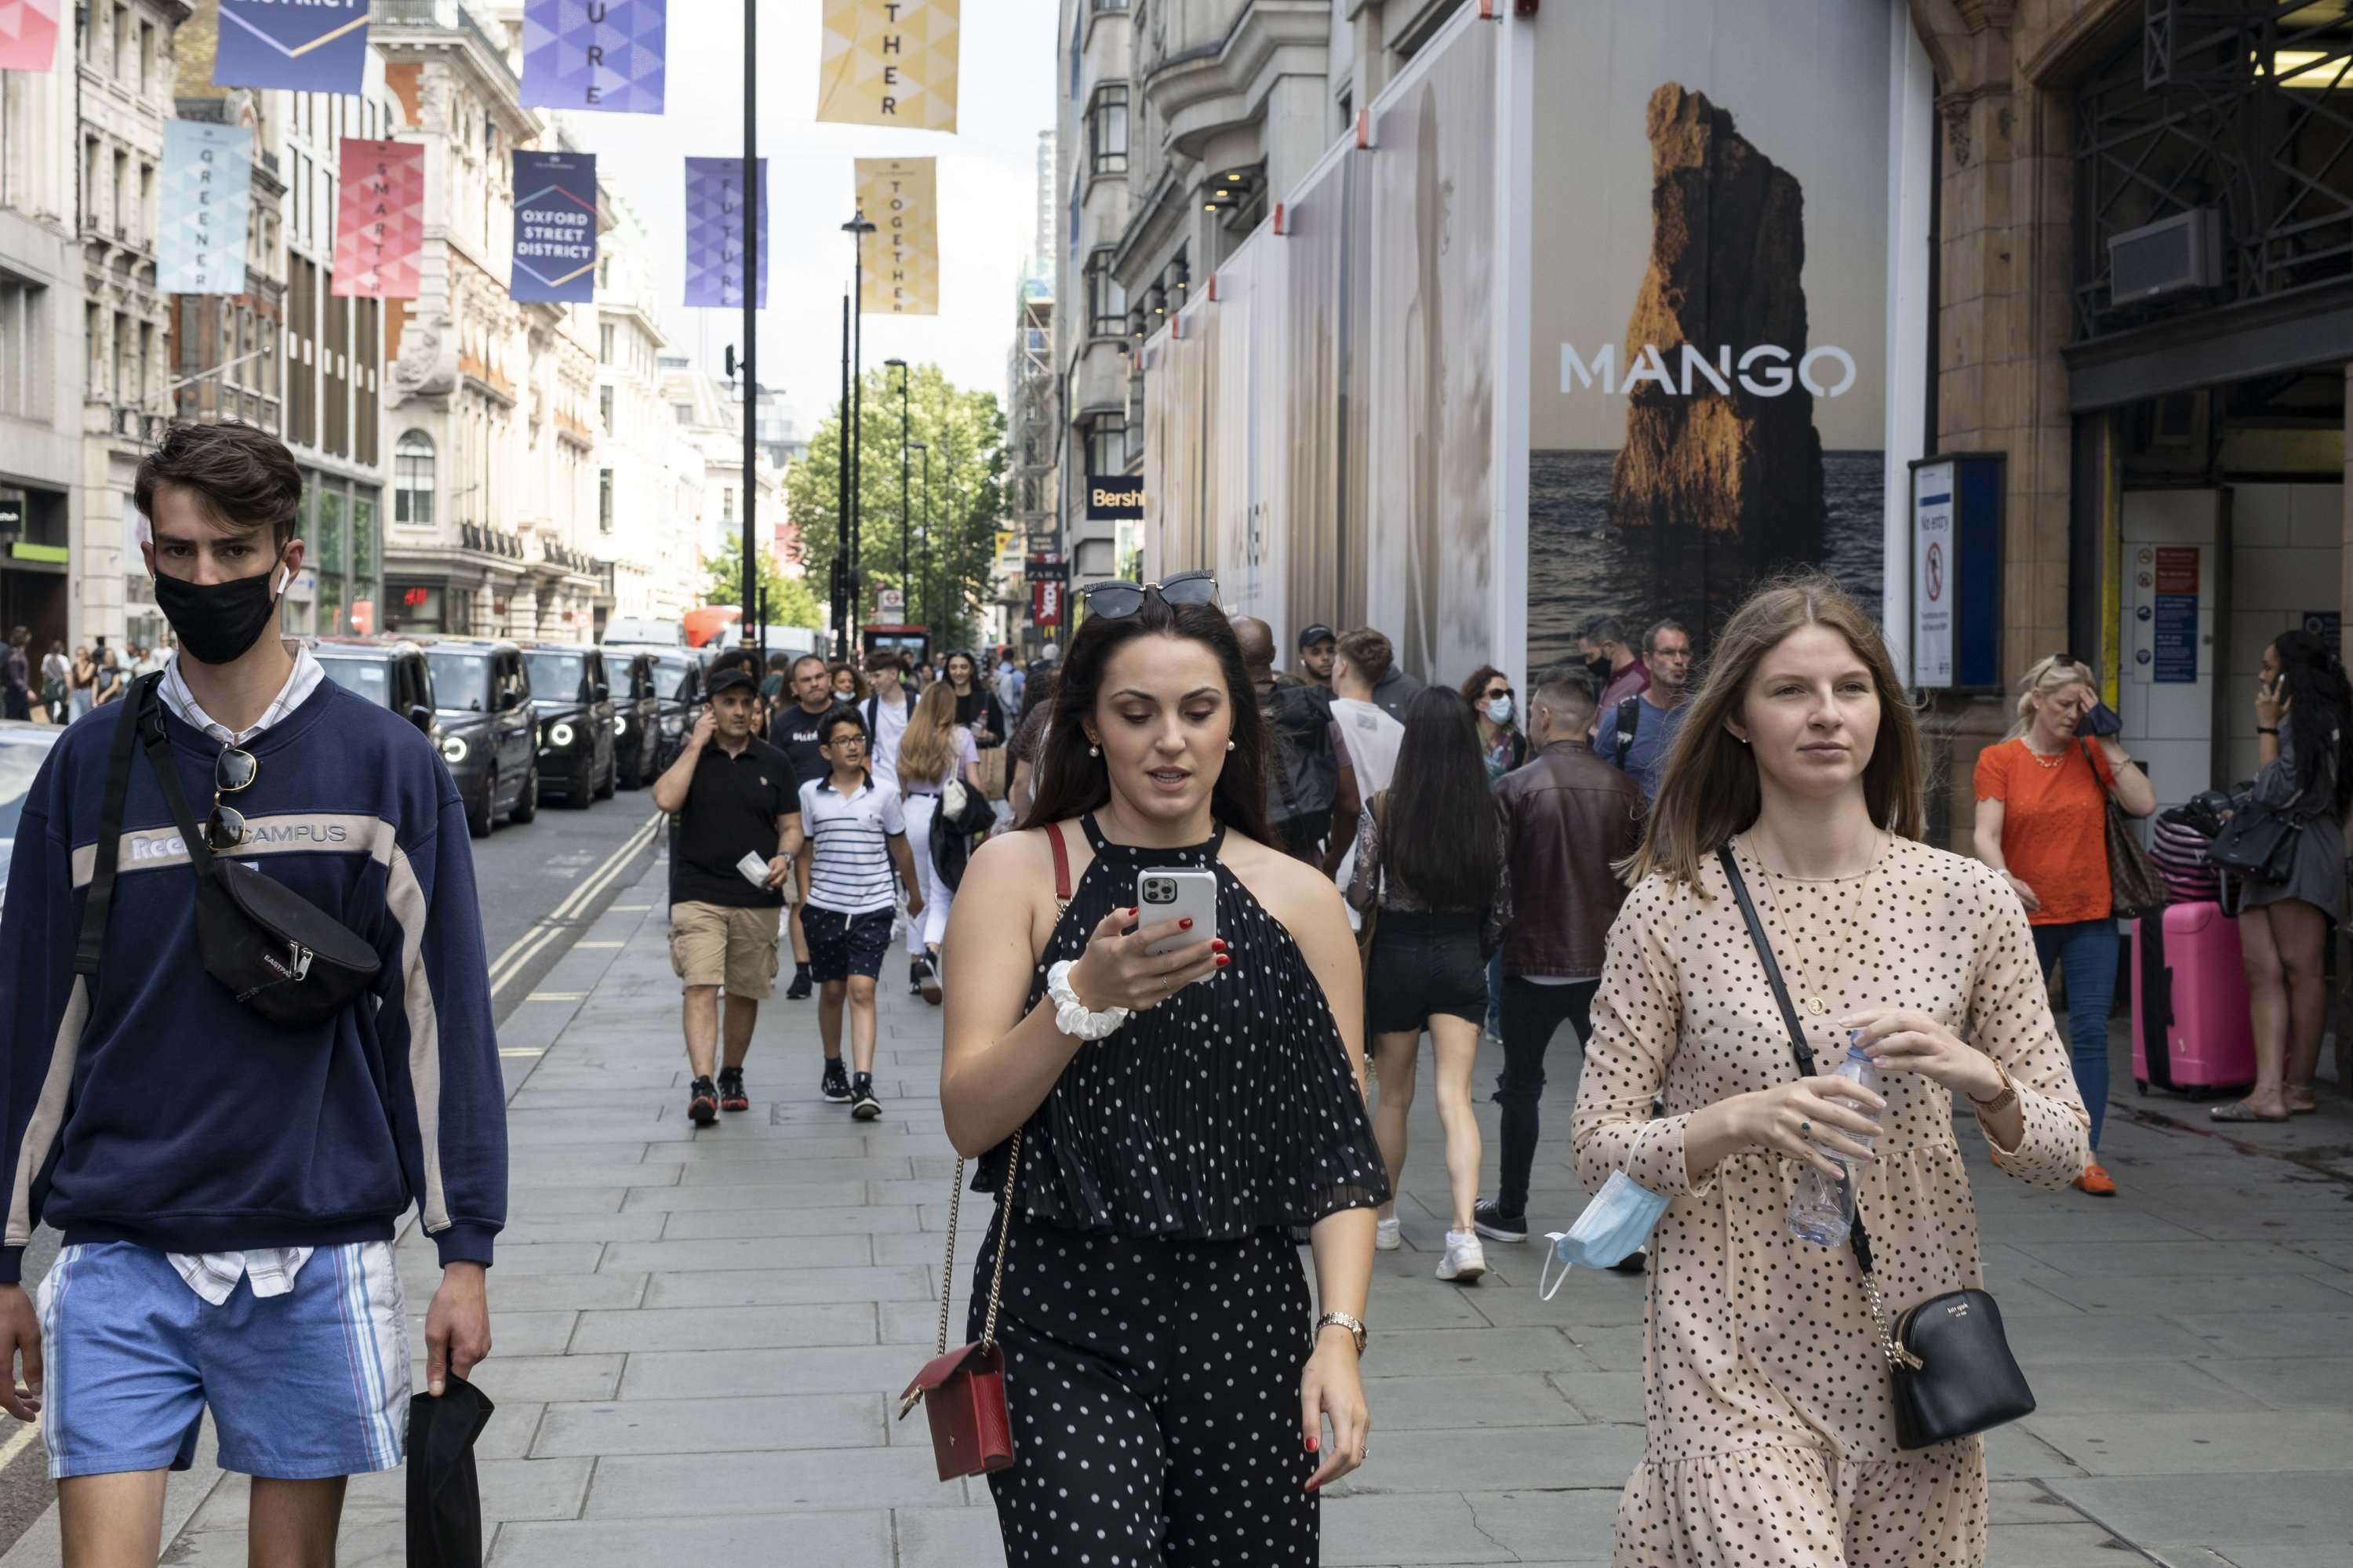 As the national coronavirus lockdown three eases towards the planned 'Freedom Day' in just over two weeks, people, many of whom are still wearing face masks while out on the street, come to Oxford Street shopping district in London, U.K., on July 22, 2021. (Getty Images)